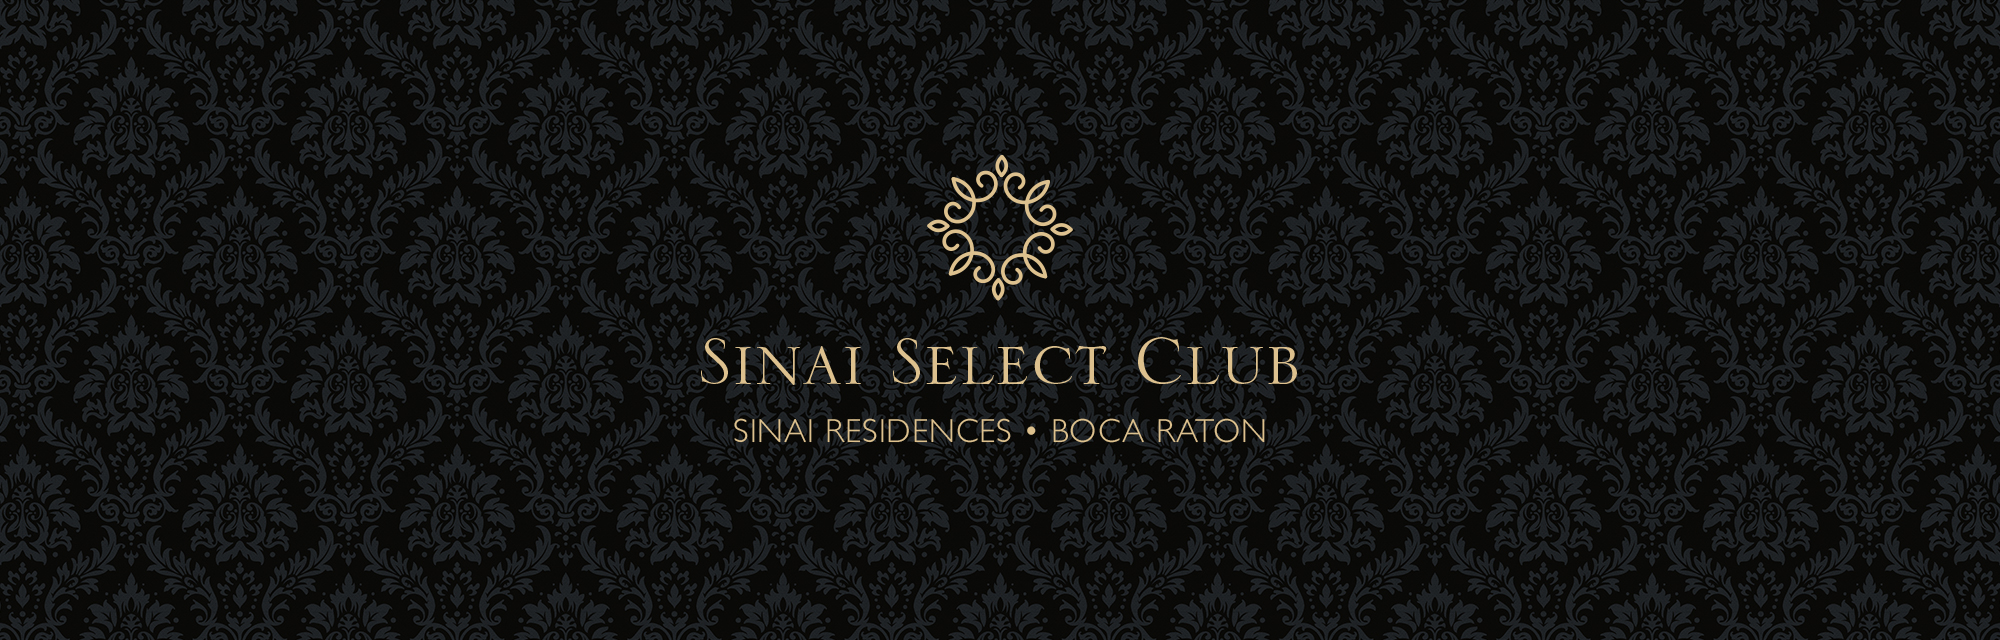 Sinai Select Club Member Sinai Residences